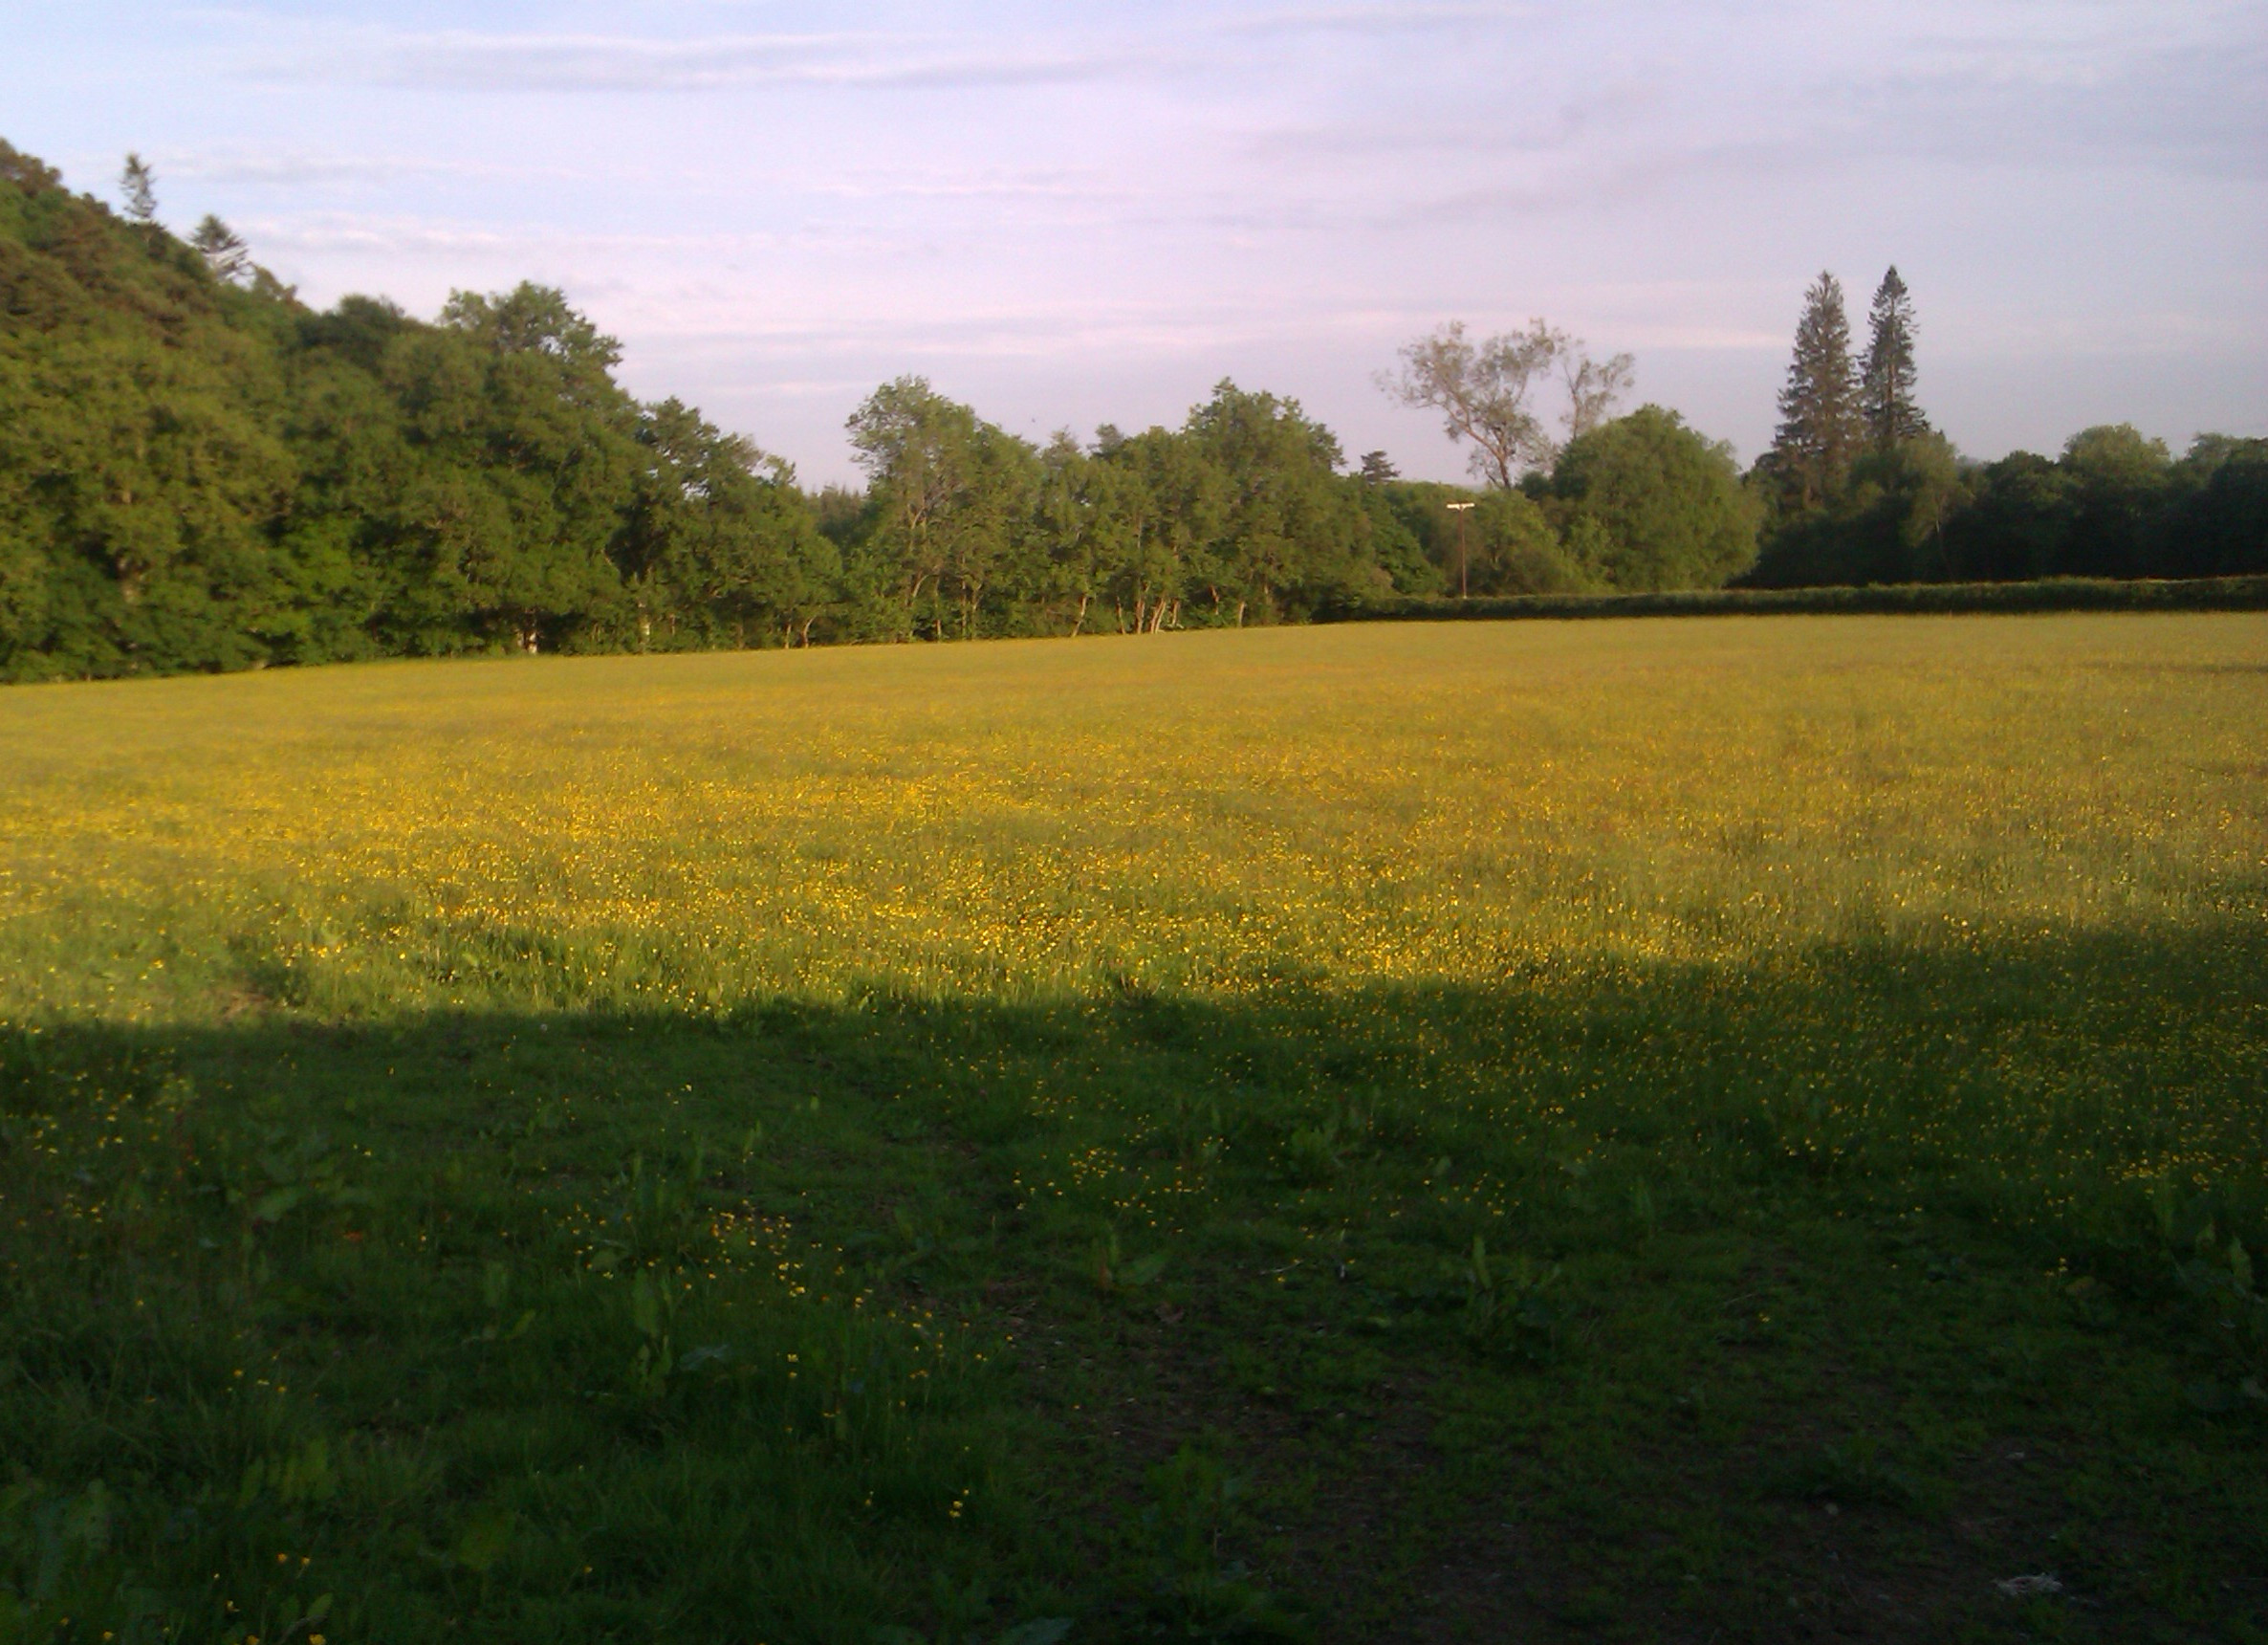 A local meadow, on a bright day